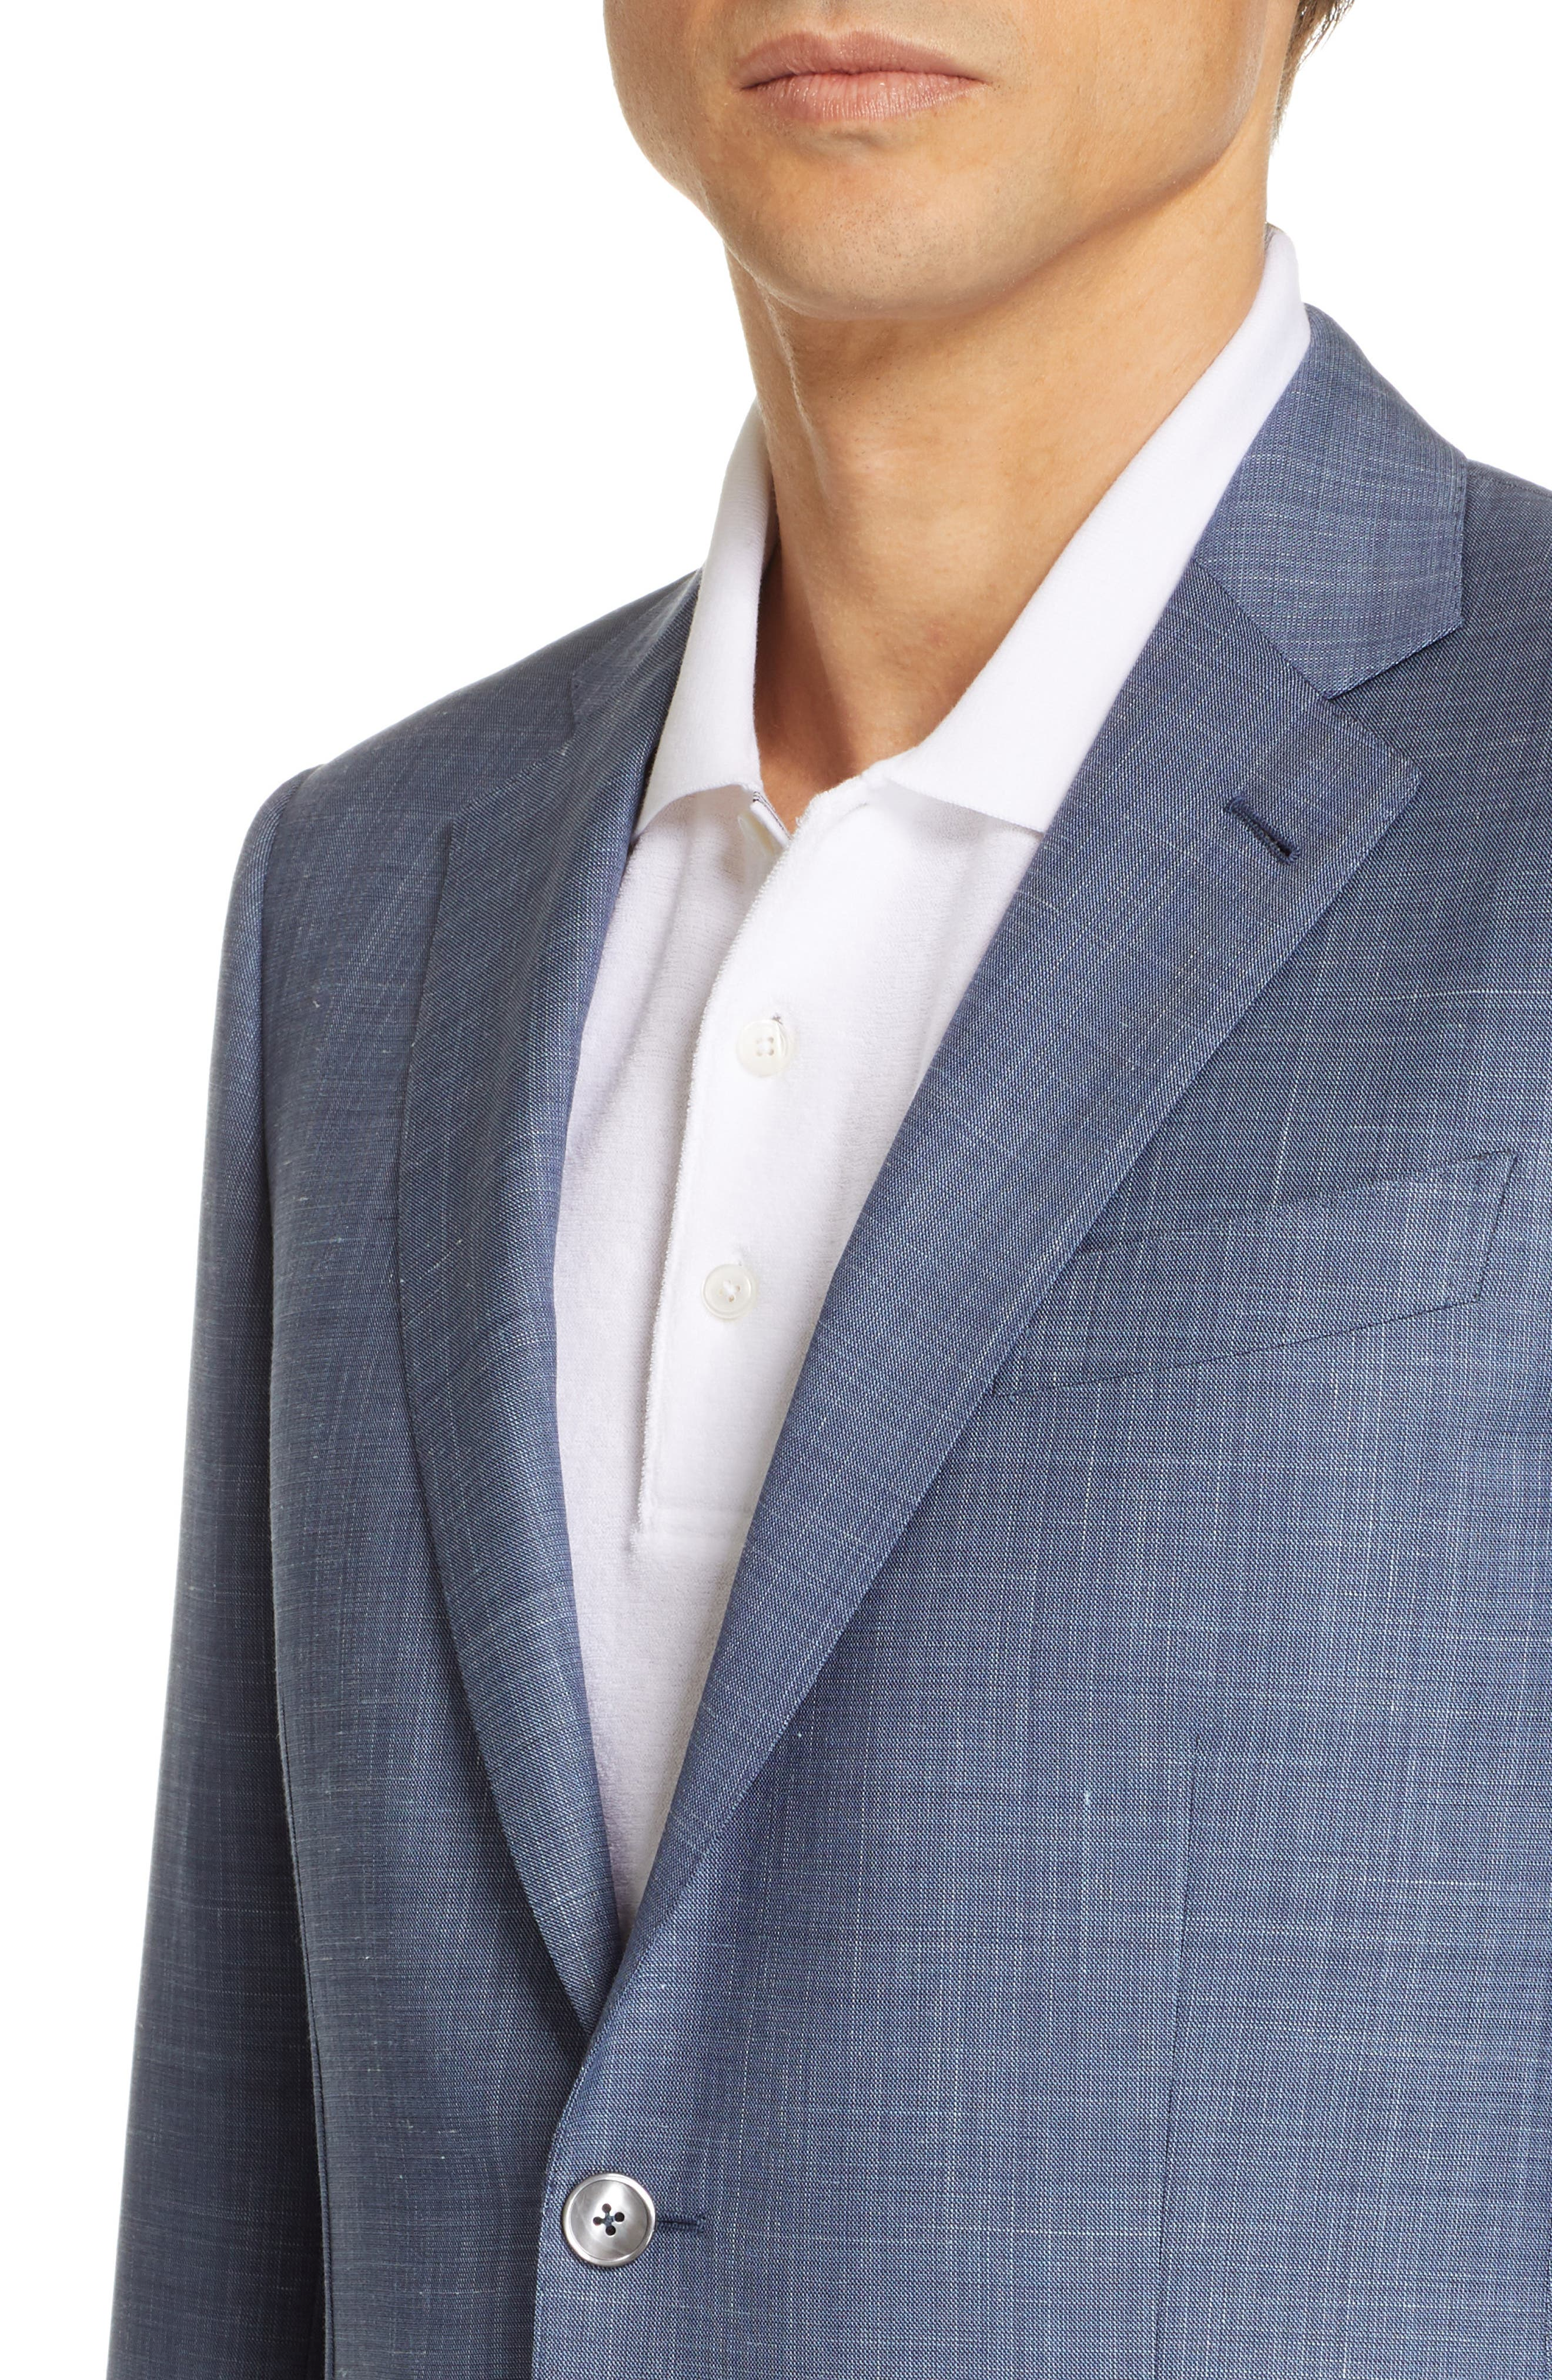 ERMENEGILDO ZEGNA, Trofeo Classic Fit Solid Wool Blend Suit, Alternate thumbnail 4, color, BLUE